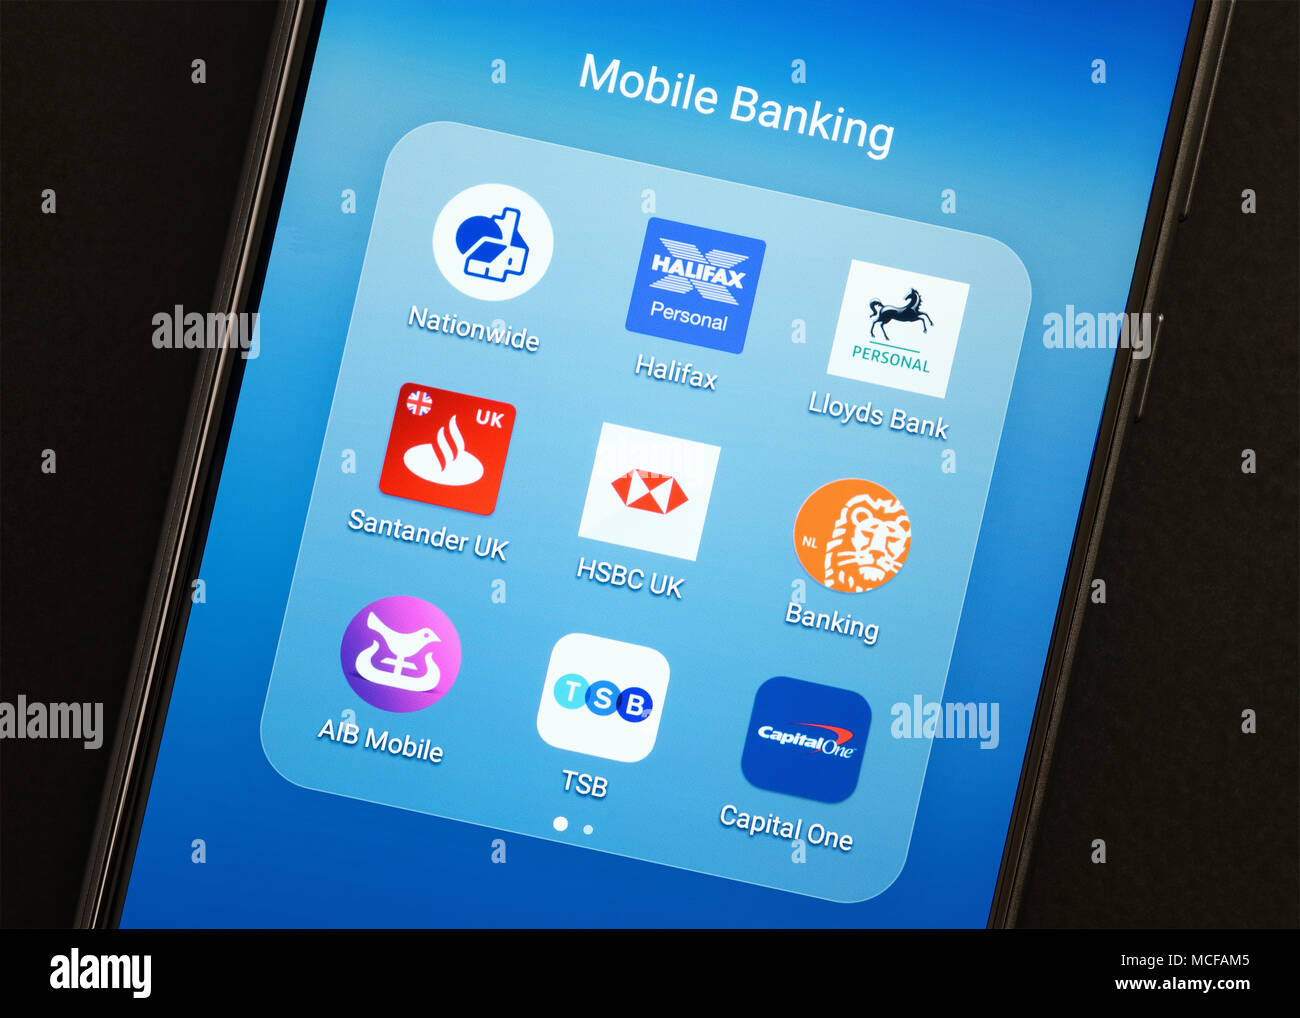 Banking Apps on a Smartphone, UK Stock Photo: 179817237 - Alamy